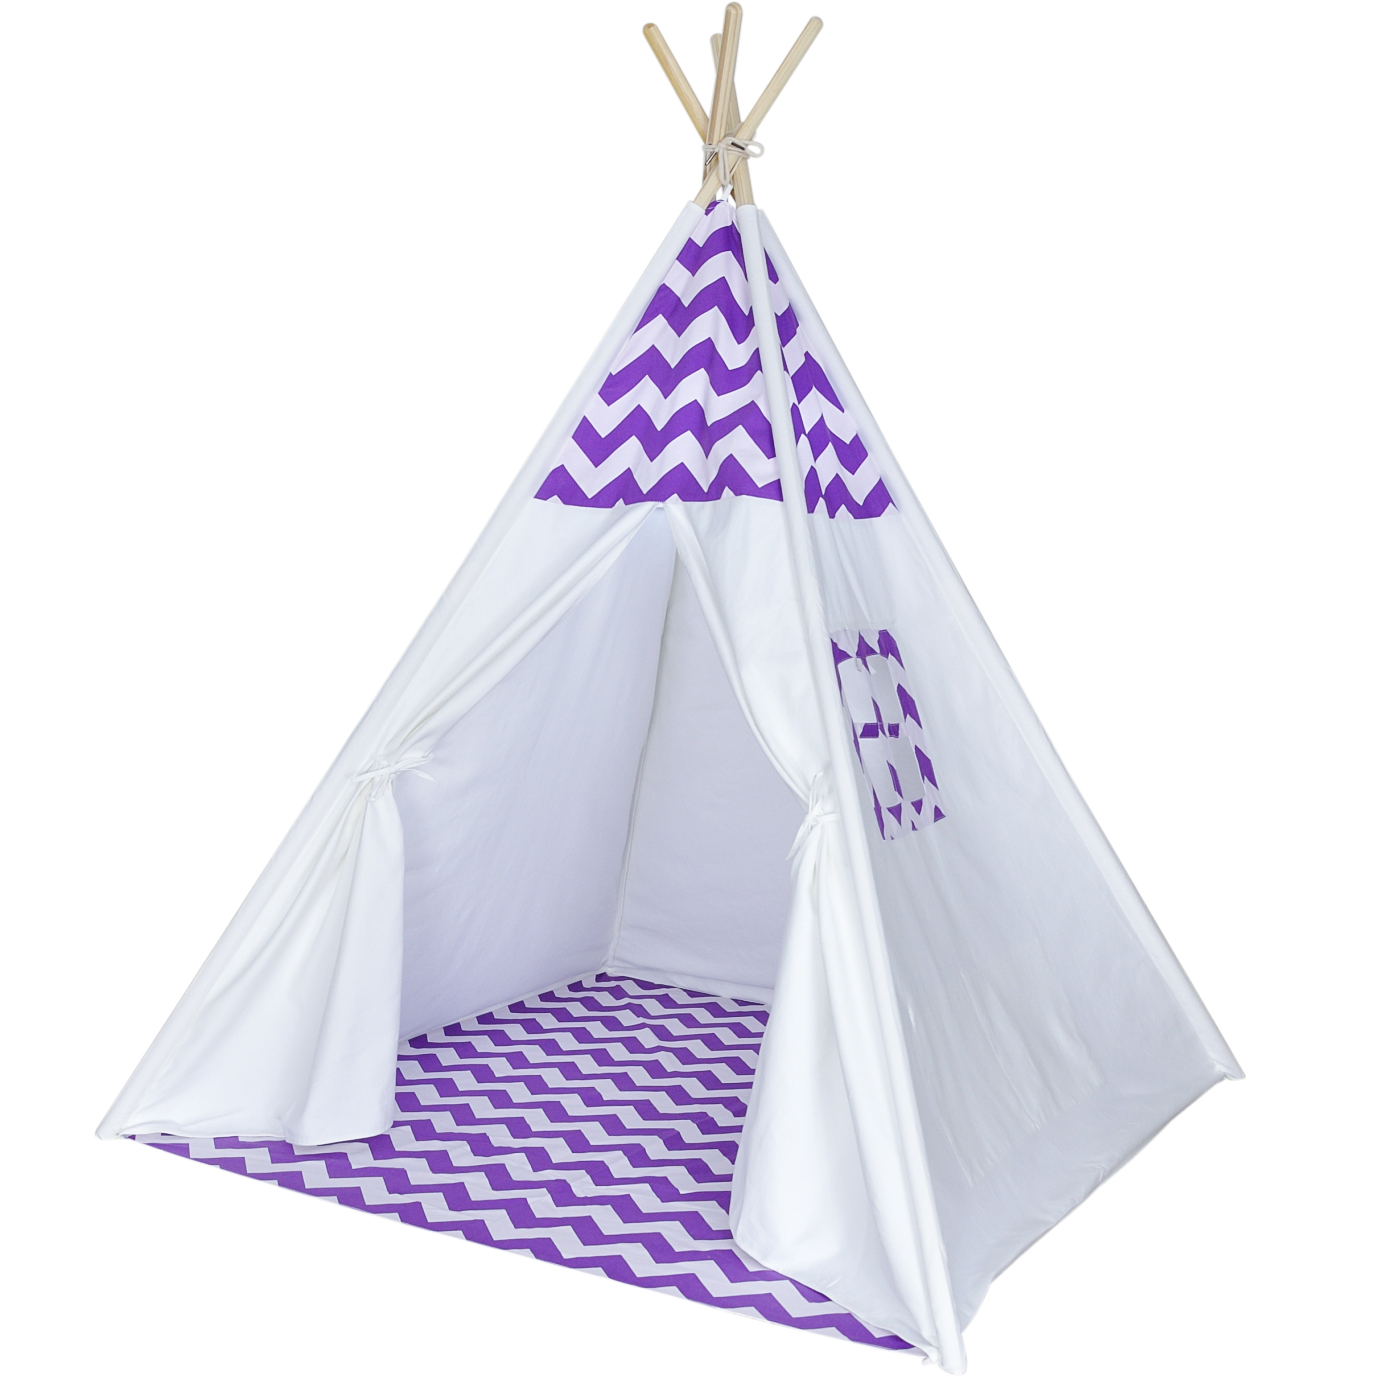 buy online 88709 0747e Kids Teepee Tent, Purple Chevron, No Added Chemicals, Includes Carrying Case